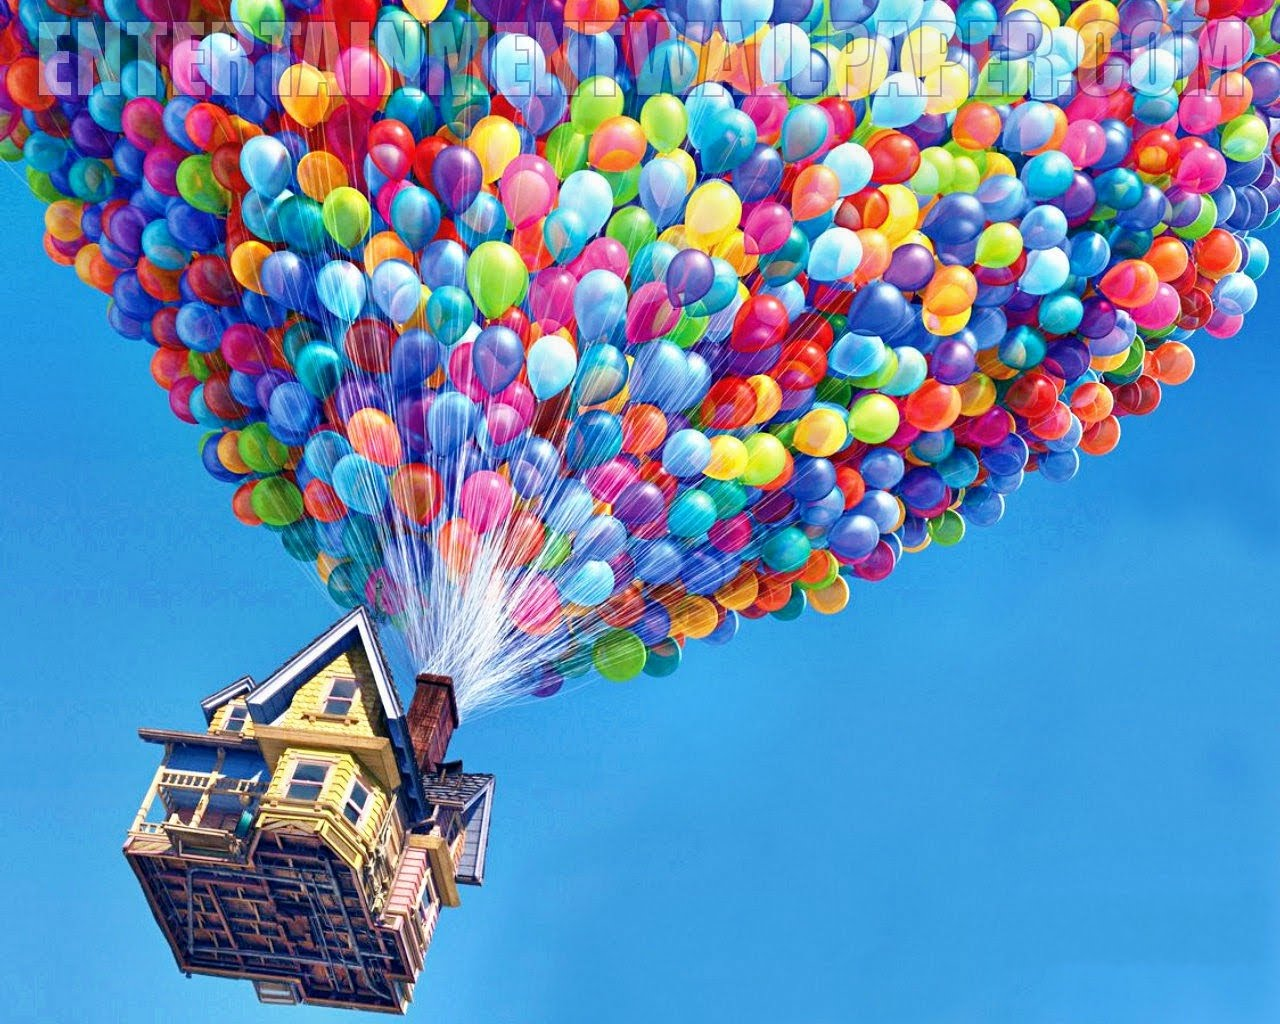 balloons wallpapers - photo #5